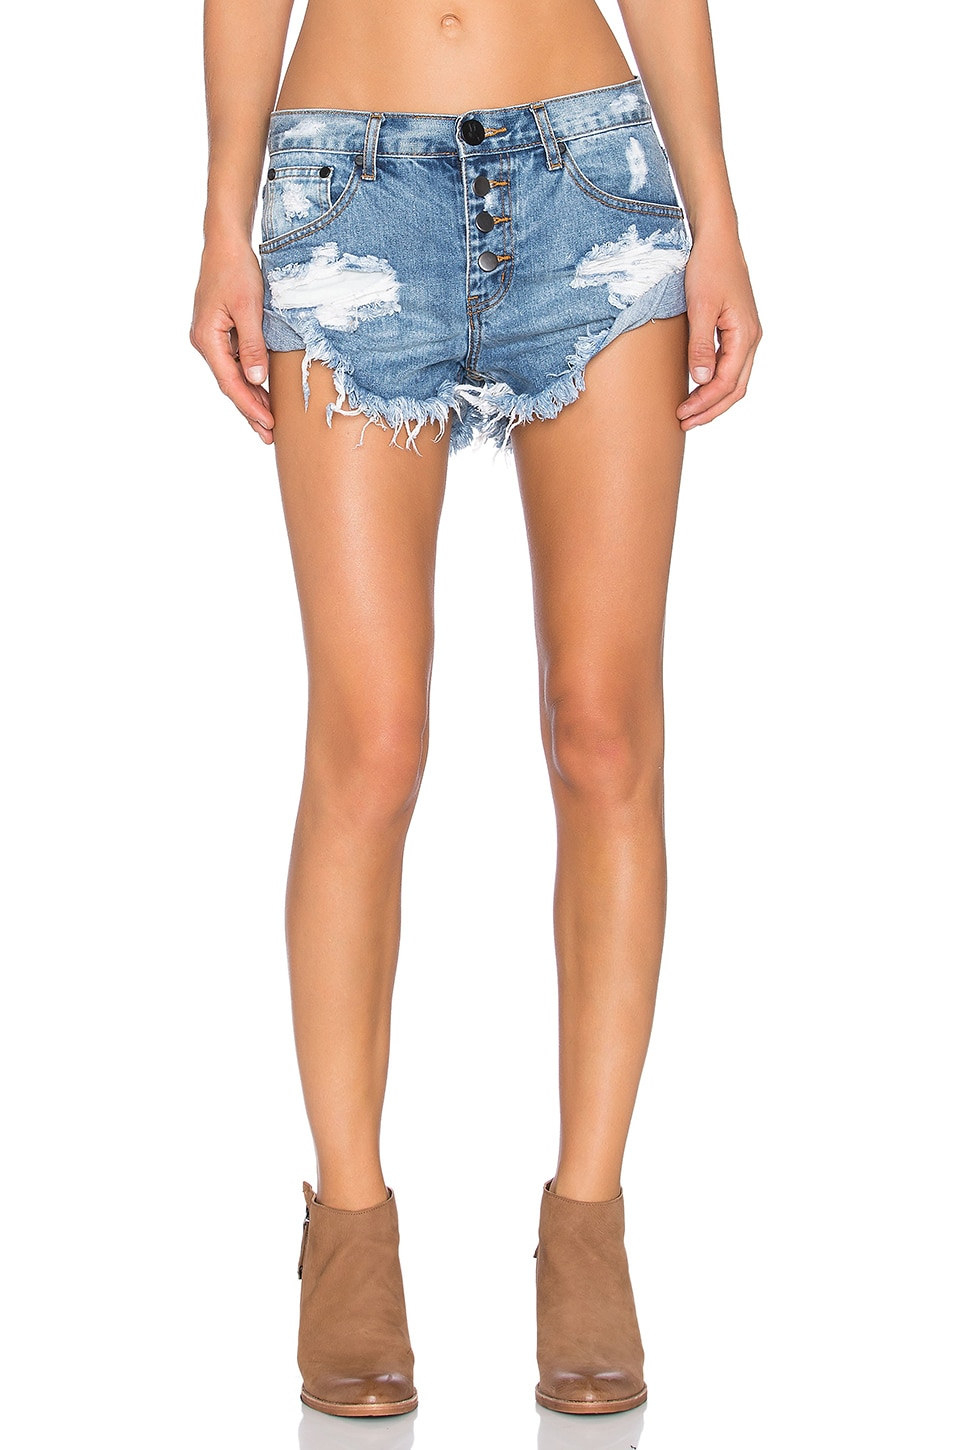 One Teaspoon Bandits Jean Short in Ford